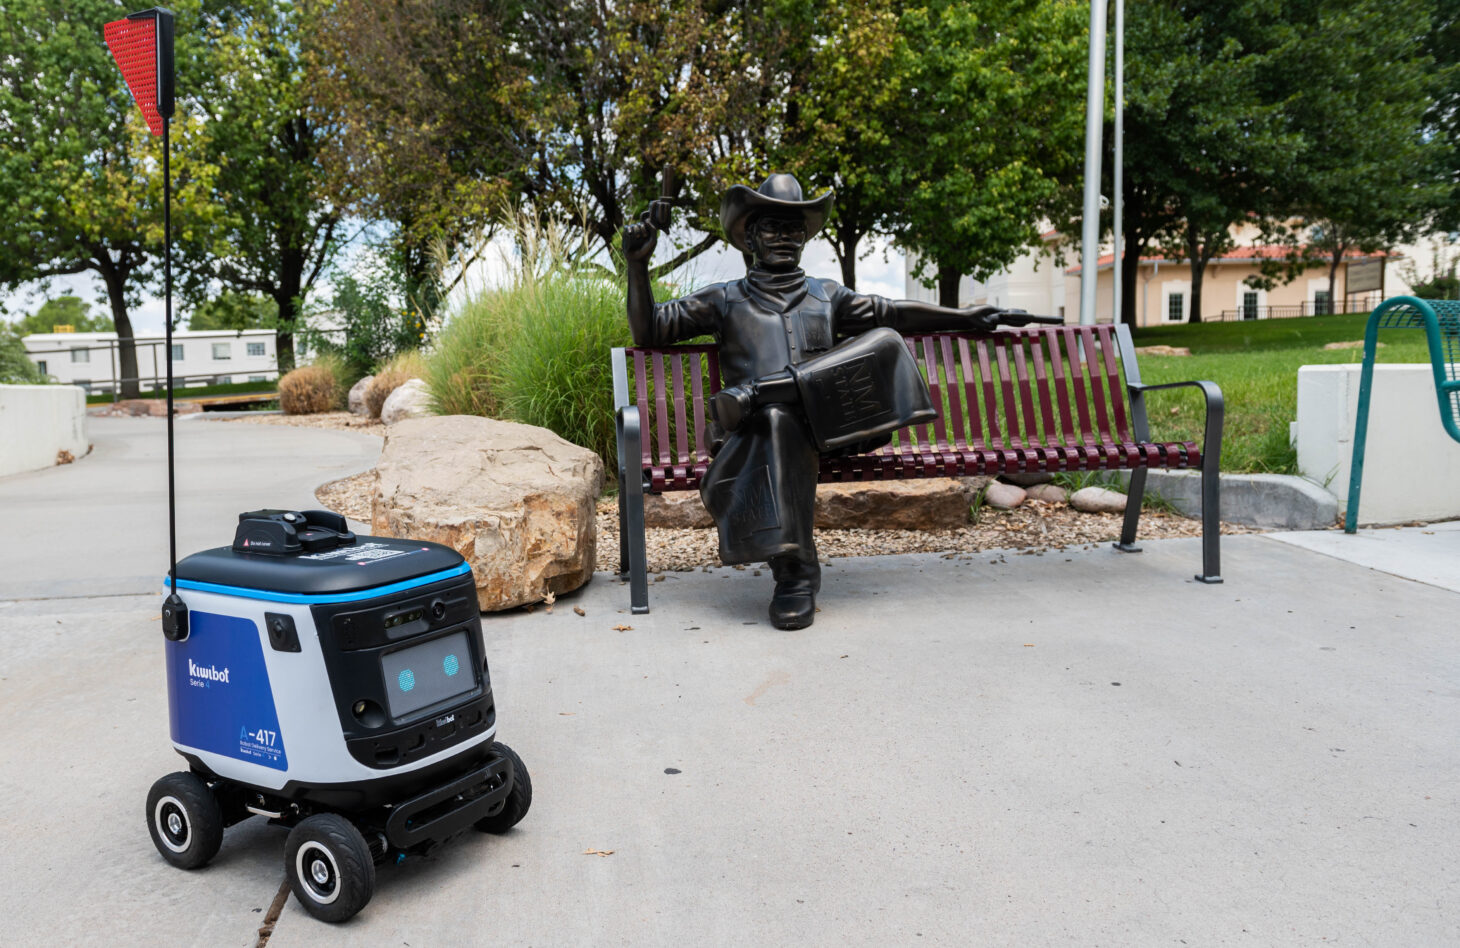 The Kiwibot food delivery service is launching at New Mexico State University, giving students, faculty and staff a quick option to get fresh meals from Sodexo-serviced locations on campus.      NMSU photo by Josh Bachman